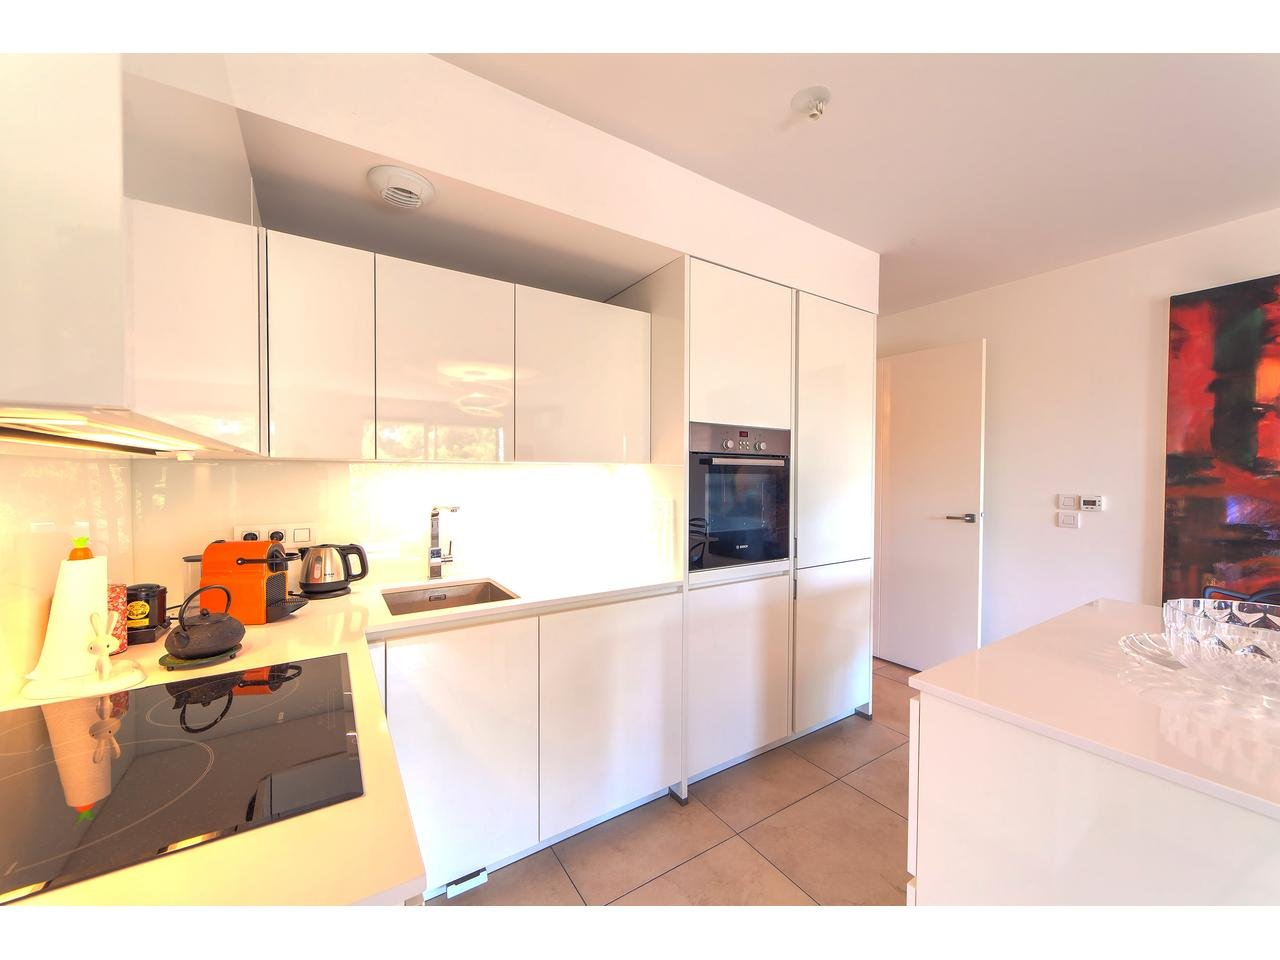 Appartement  3 Rooms 72.6m2  for sale   640000 €